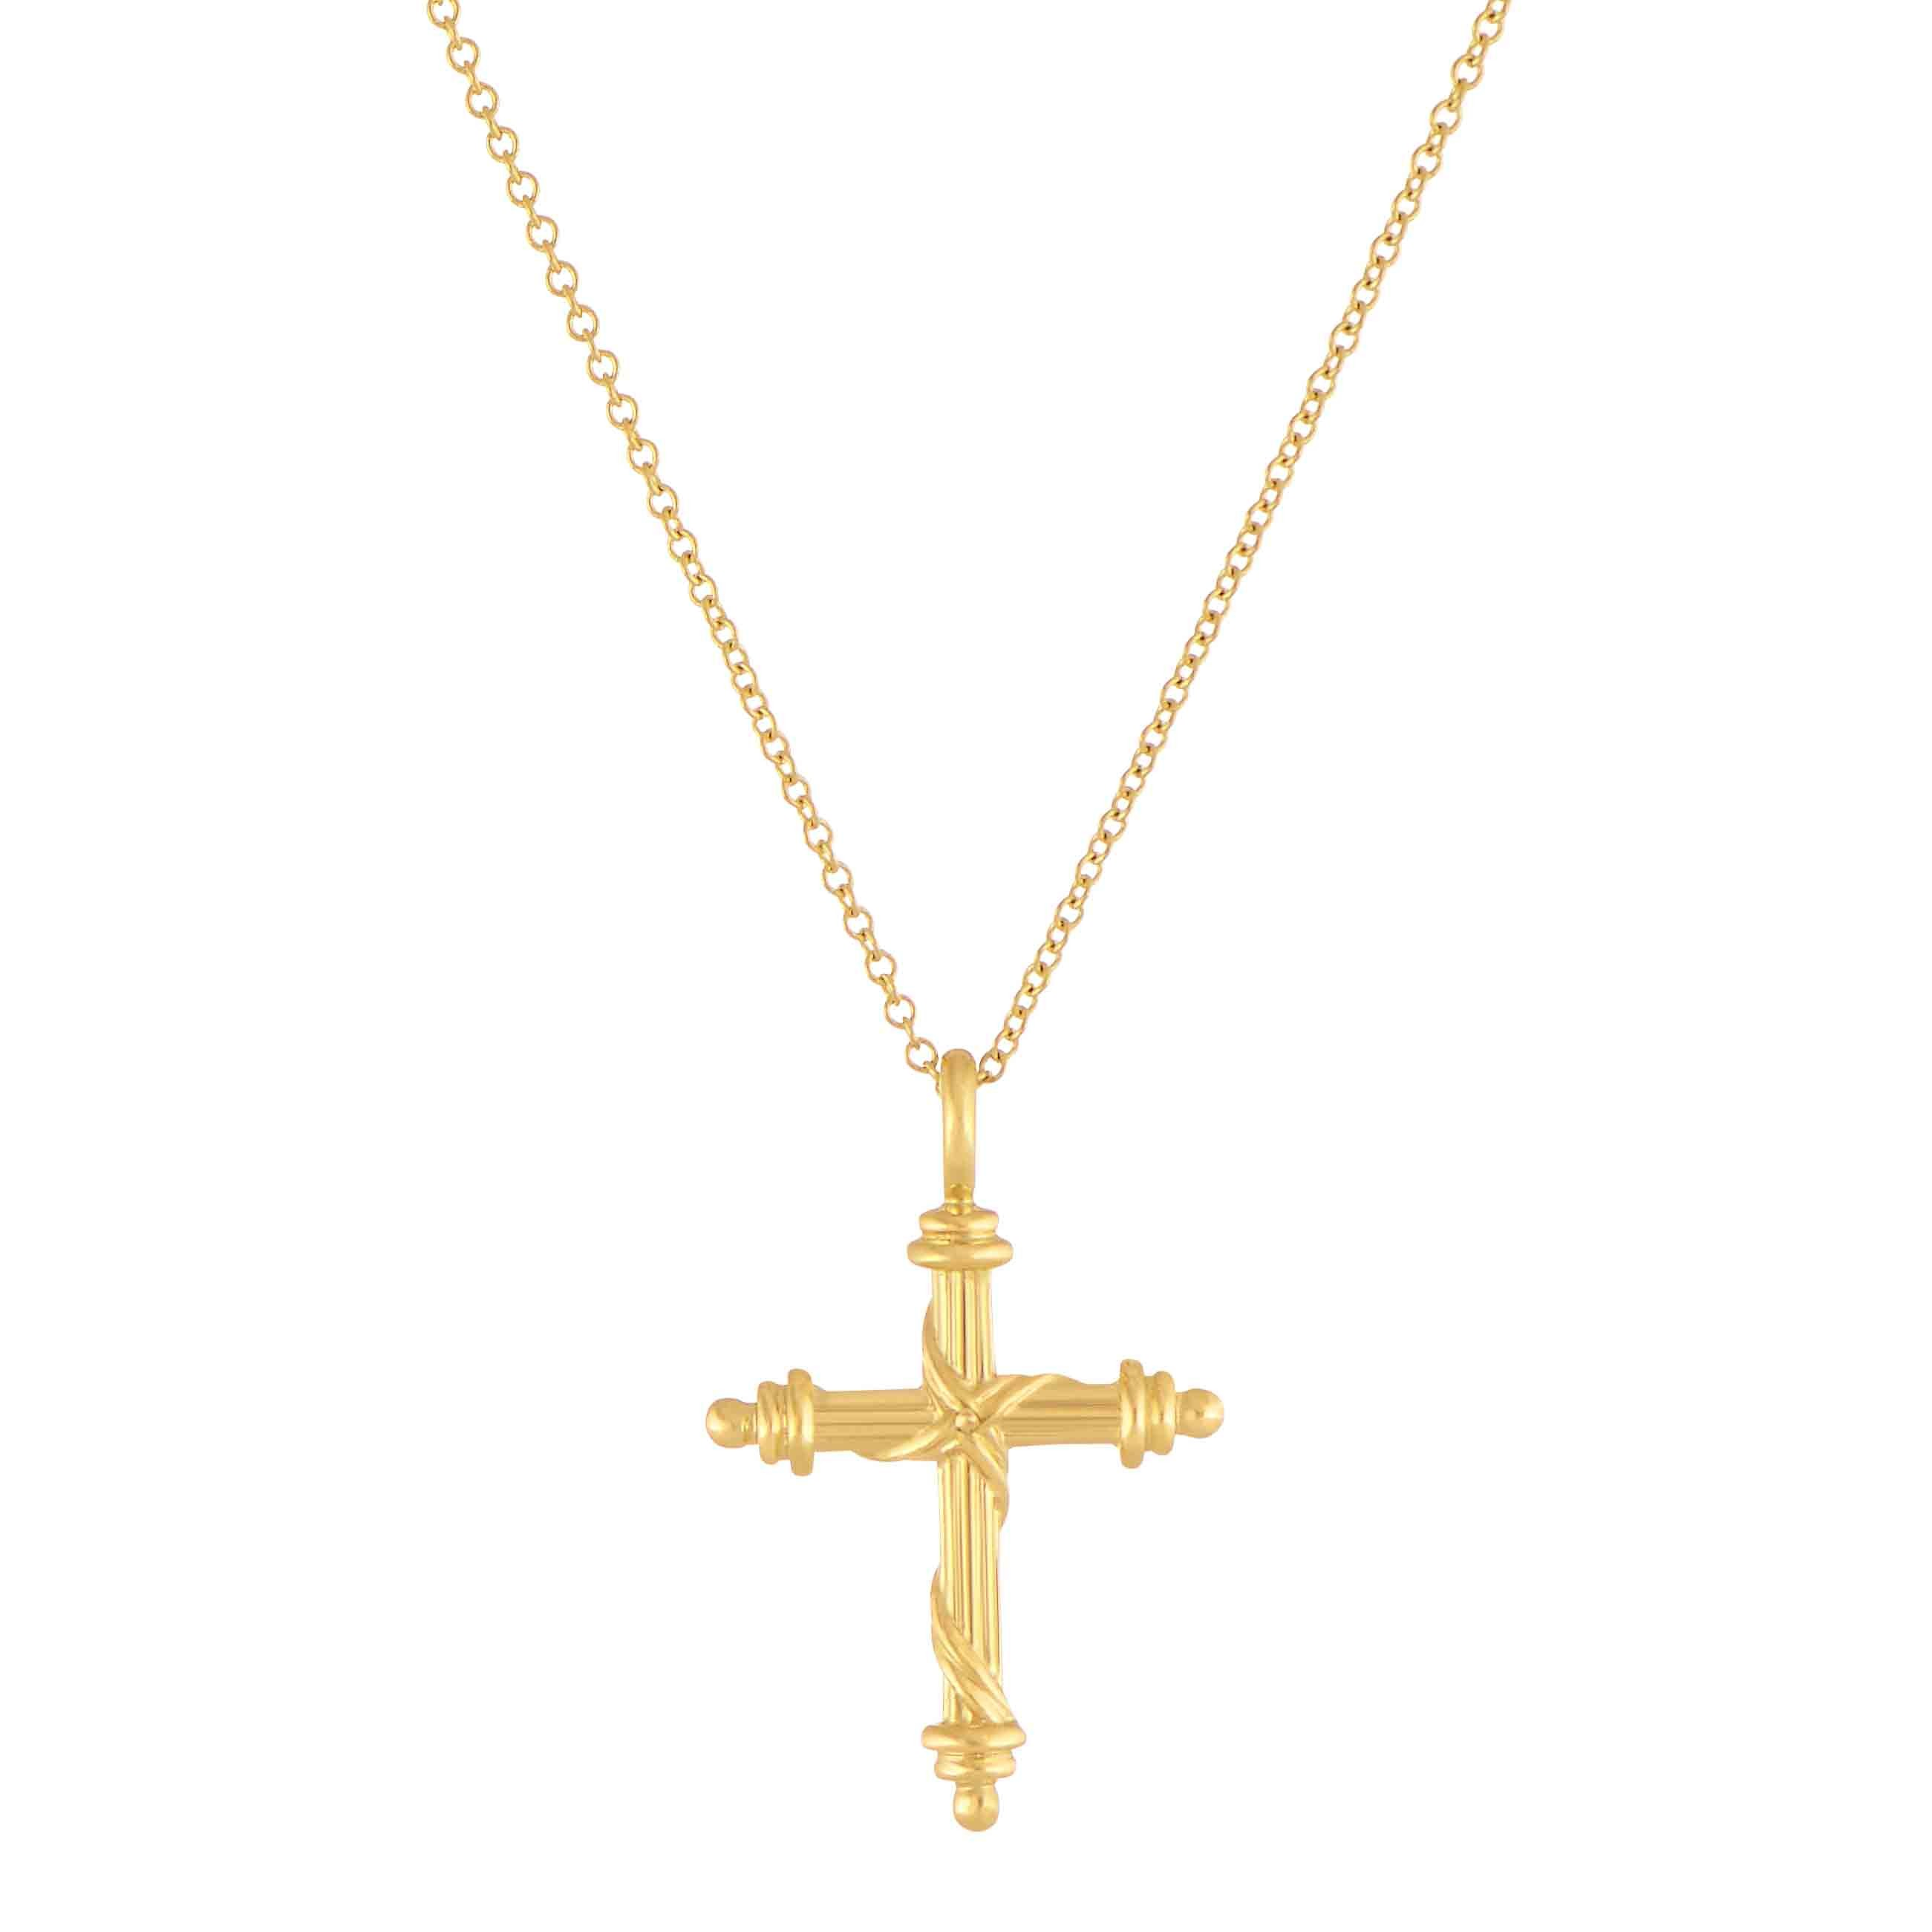 Heritage cross pendant necklace in 18k yellow gold mini heritage mini cross necklace in 18k yellow gold 18 adjustable chain aloadofball Image collections